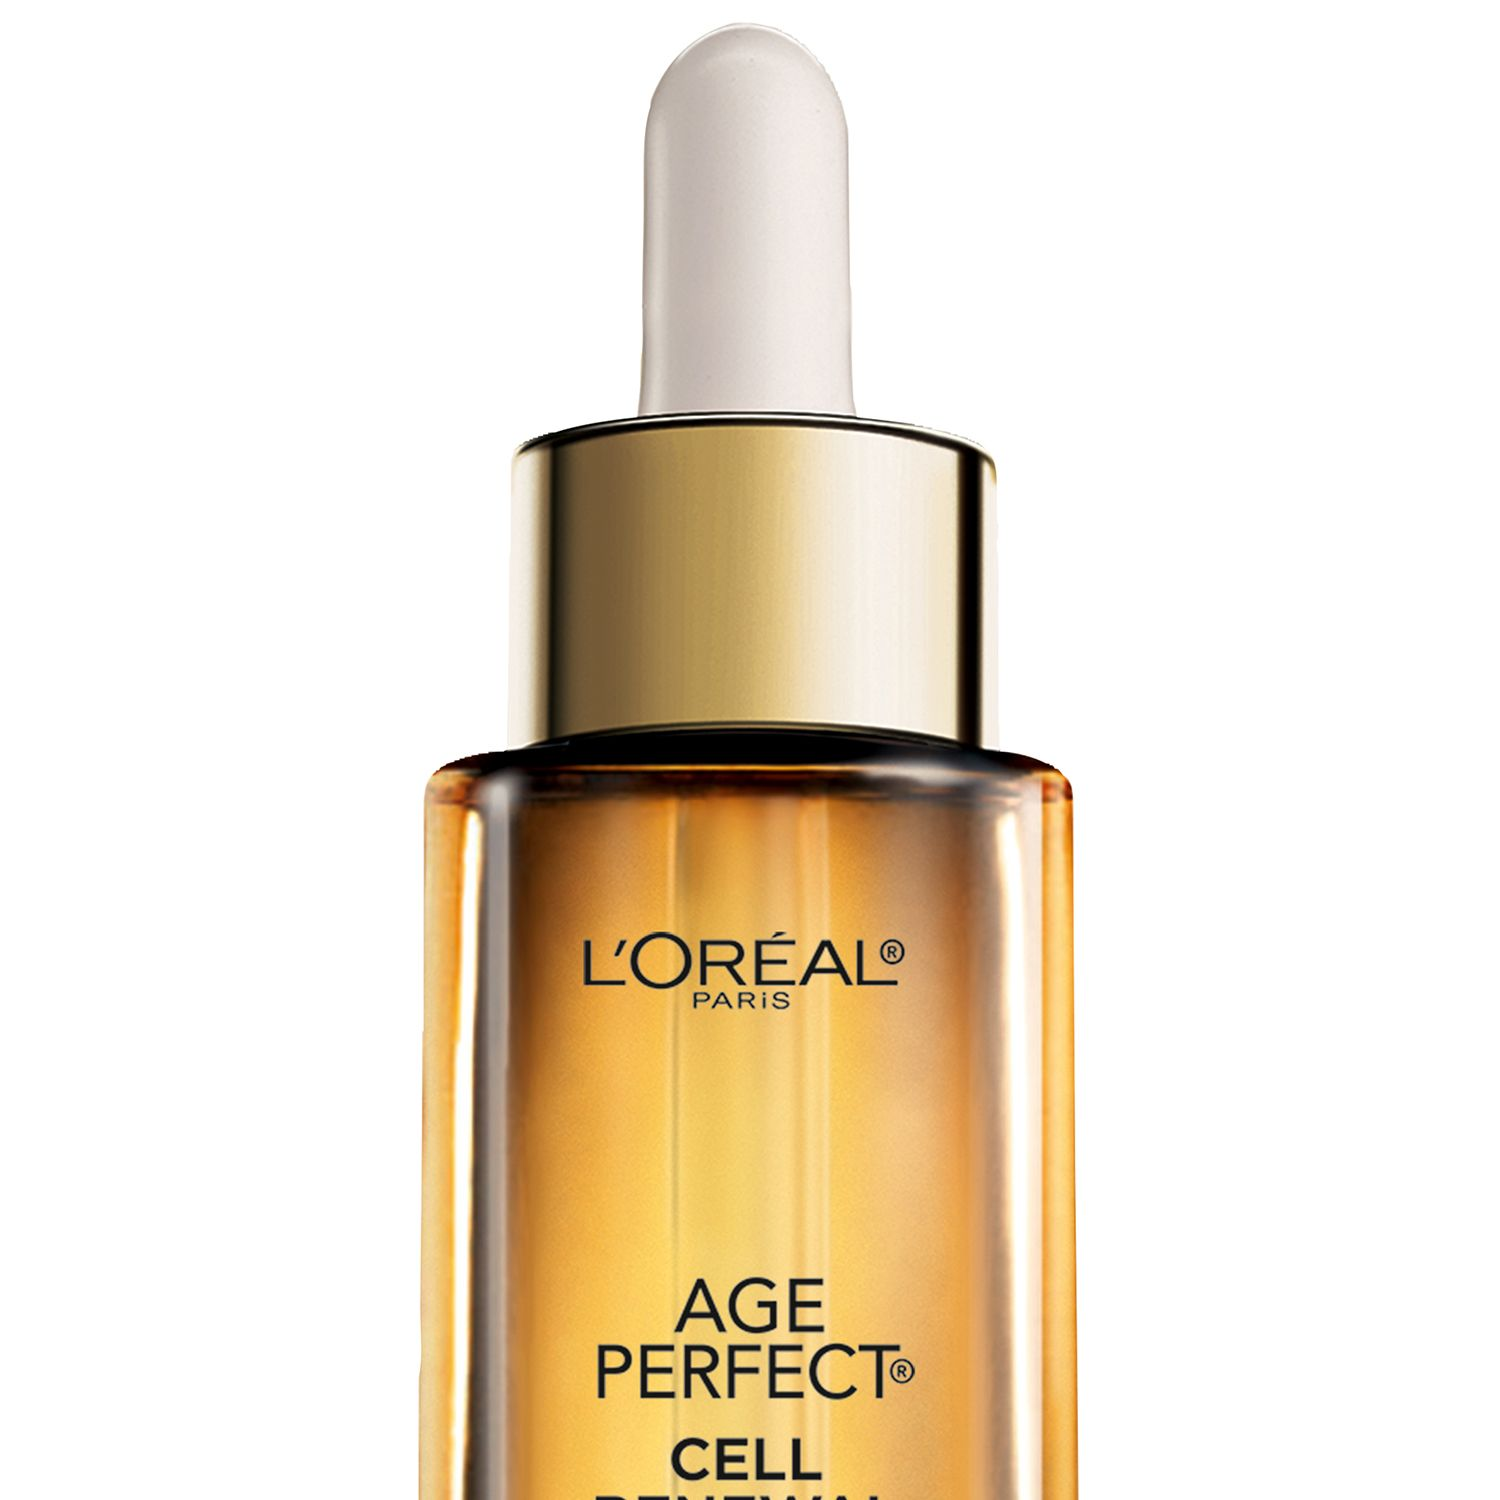 "<strong>L'Oréal</strong> Paris Age Perfect Cell Renewal Facial Oil, $24.99, <a target=""_blank"" href=""http://www.lorealparisusa.com/en/products/skin-care/treatments/age-perfect-cell-renewal-facial-oil-light.aspx"">lorealparisusa.com</a>."